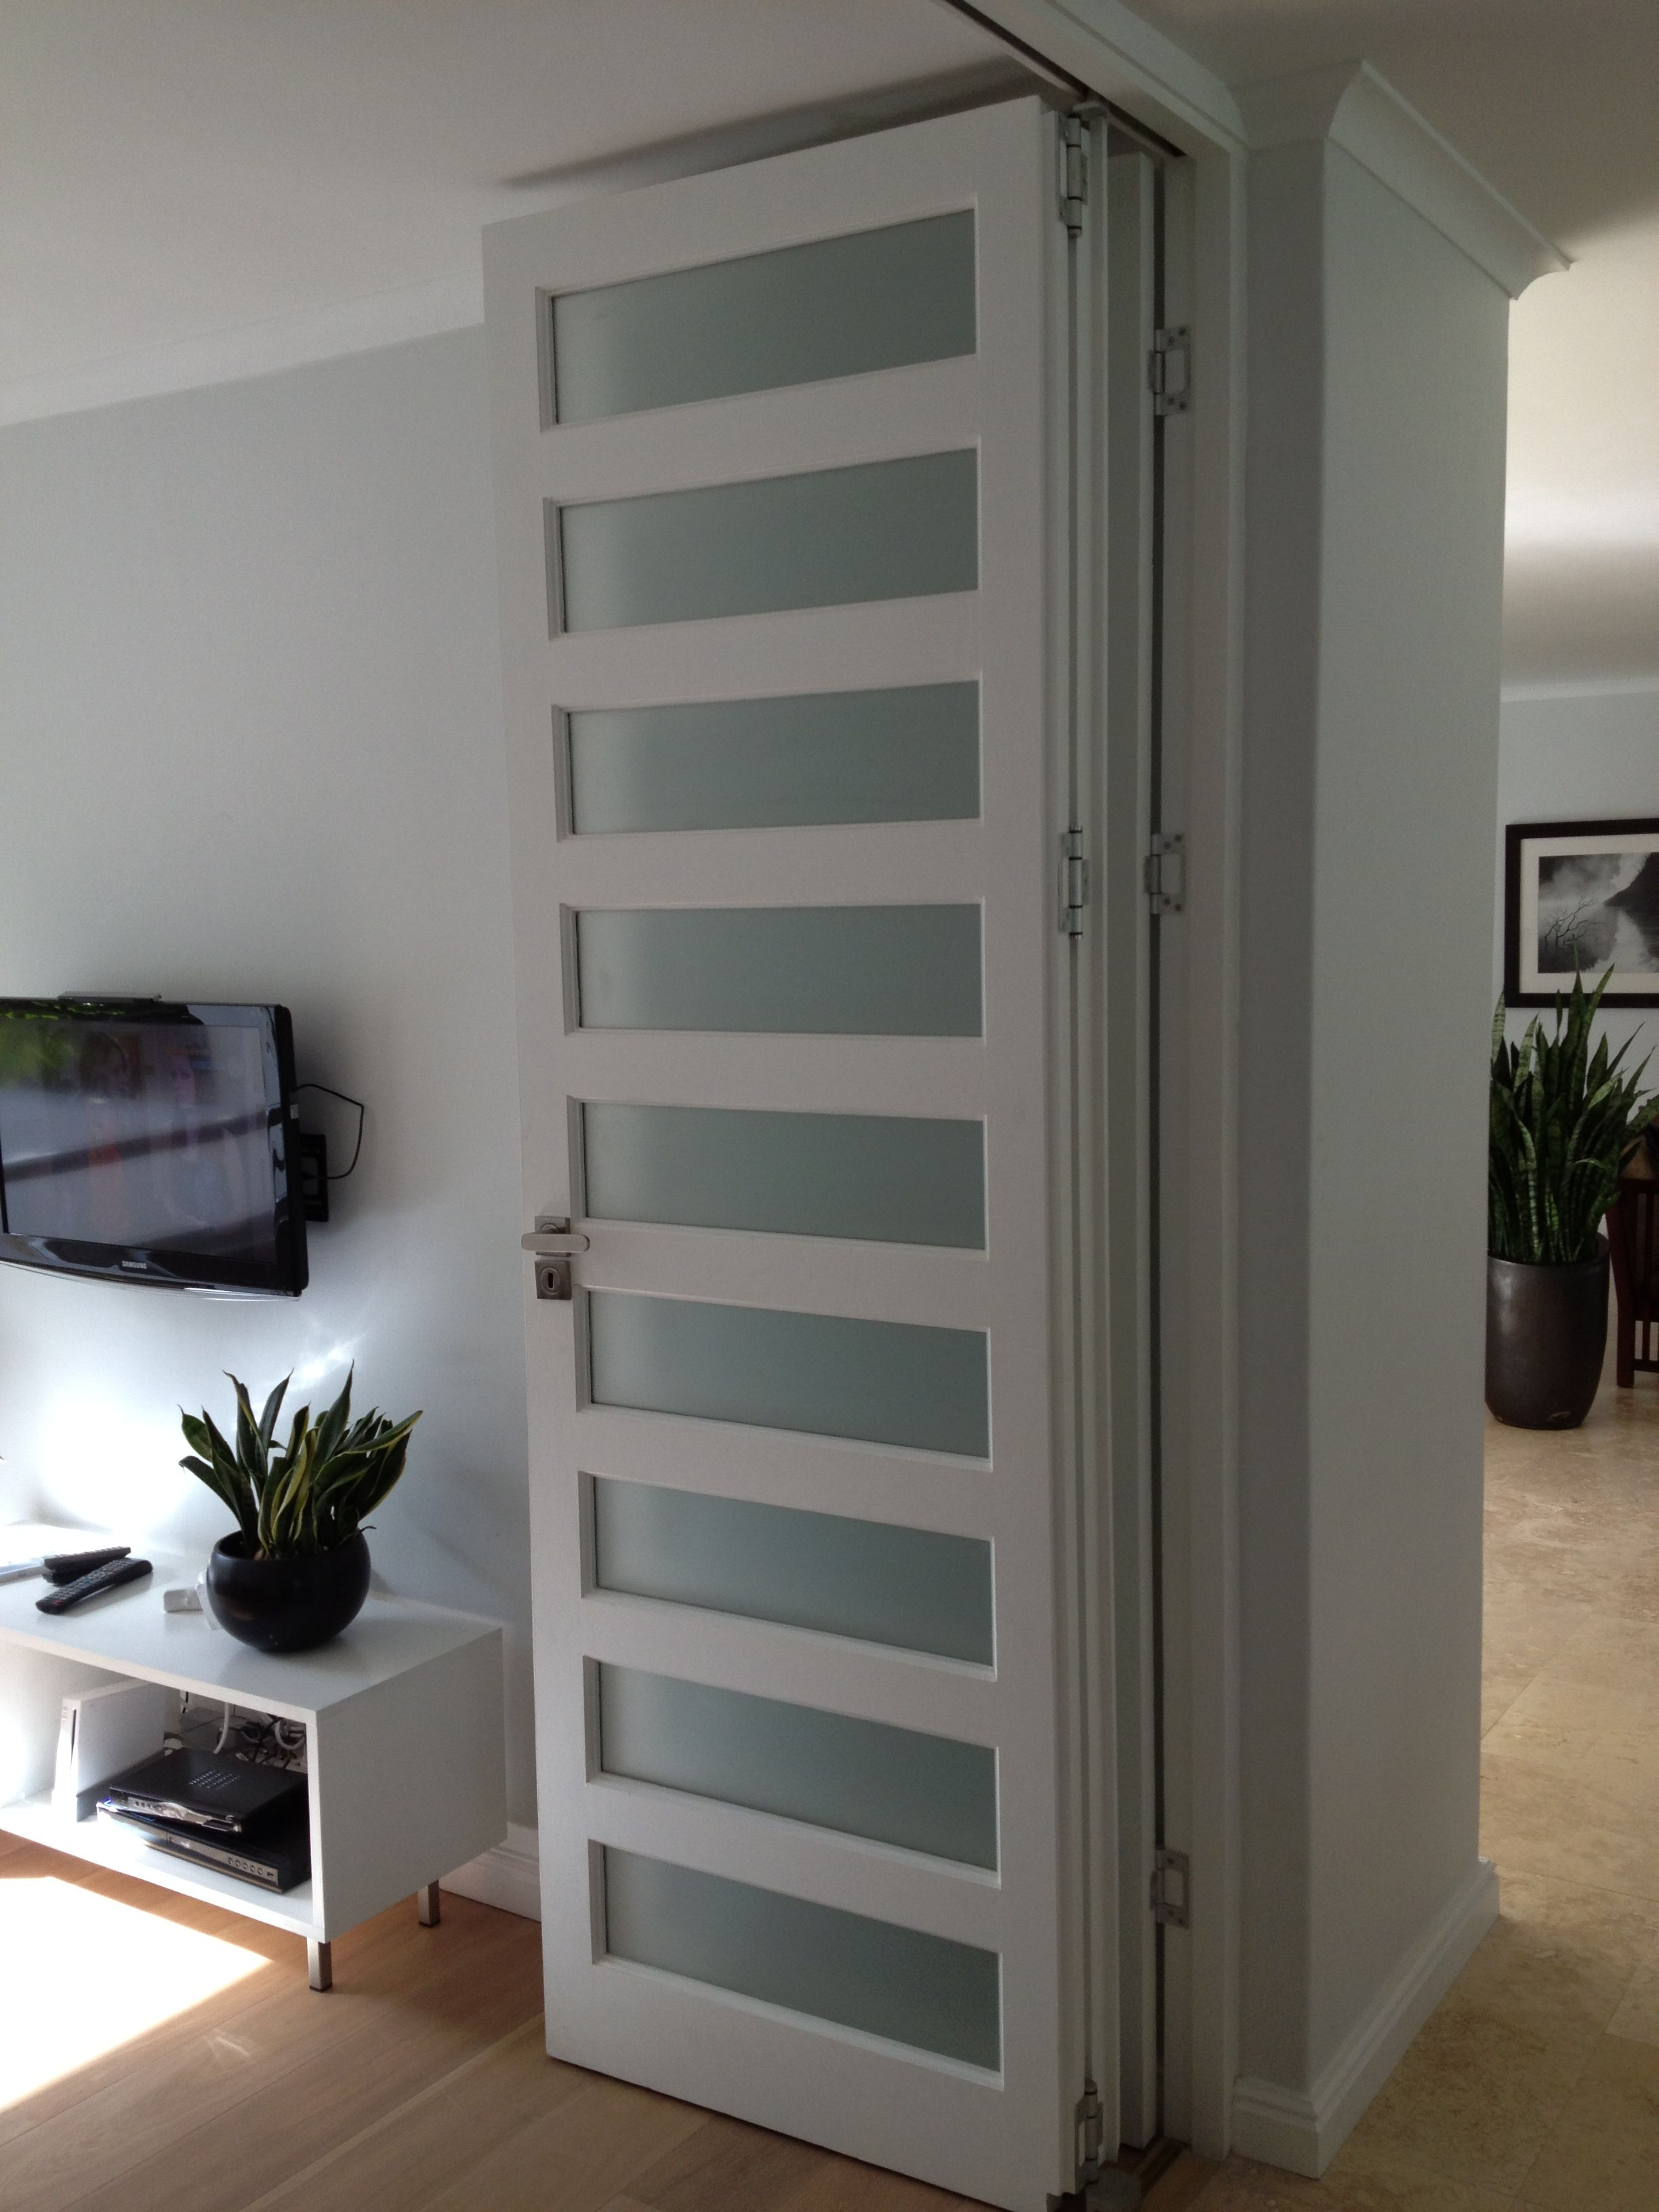 Folding room divider by door and window decor www for Room divider art